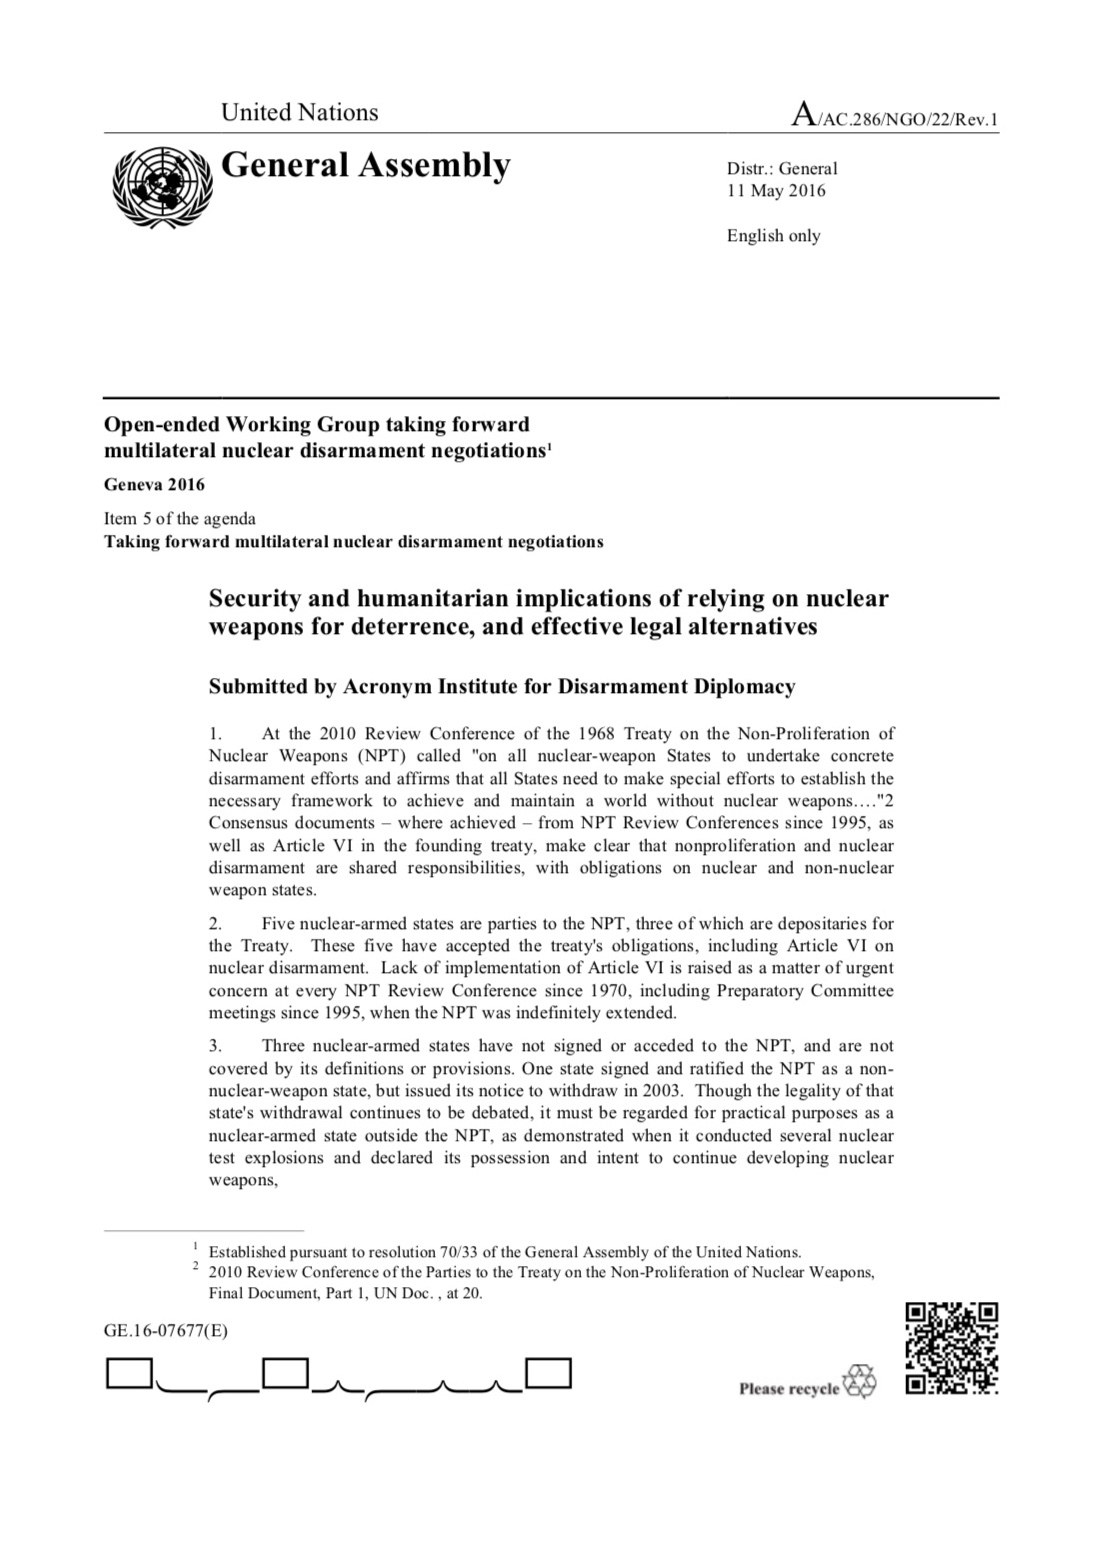 Security And Humanitarian Implications Cover